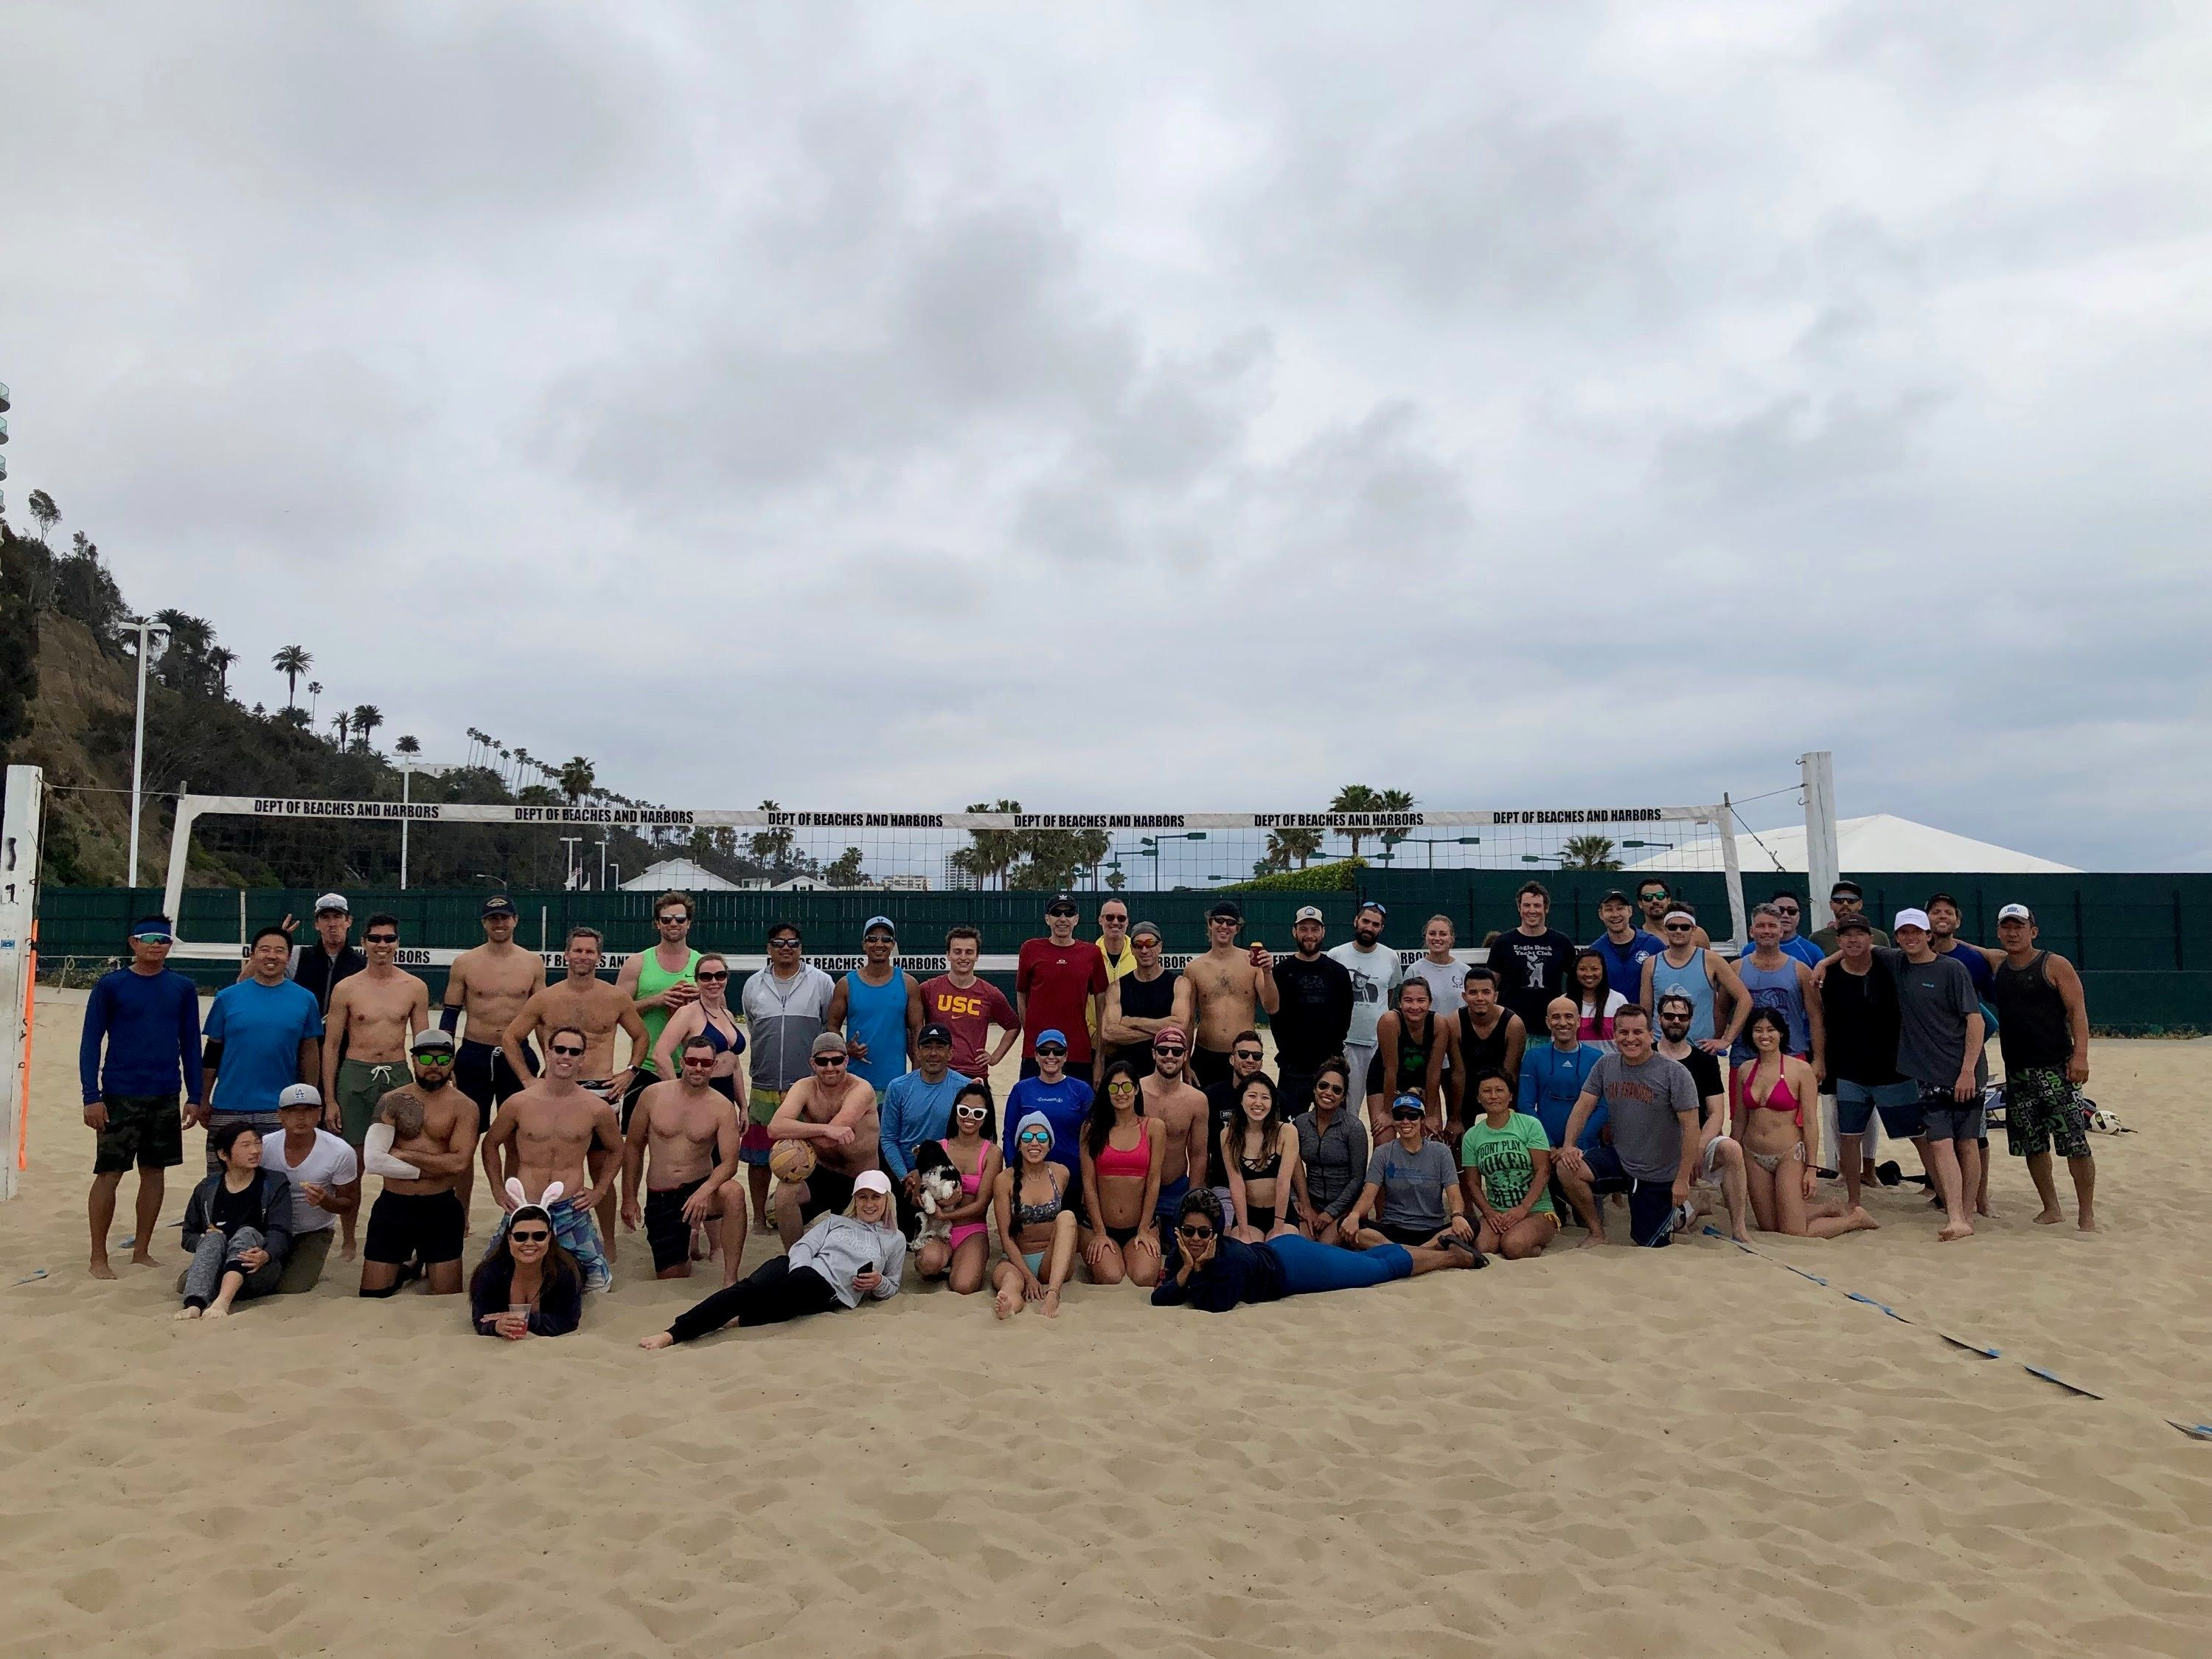 West LA Beach Volleyball